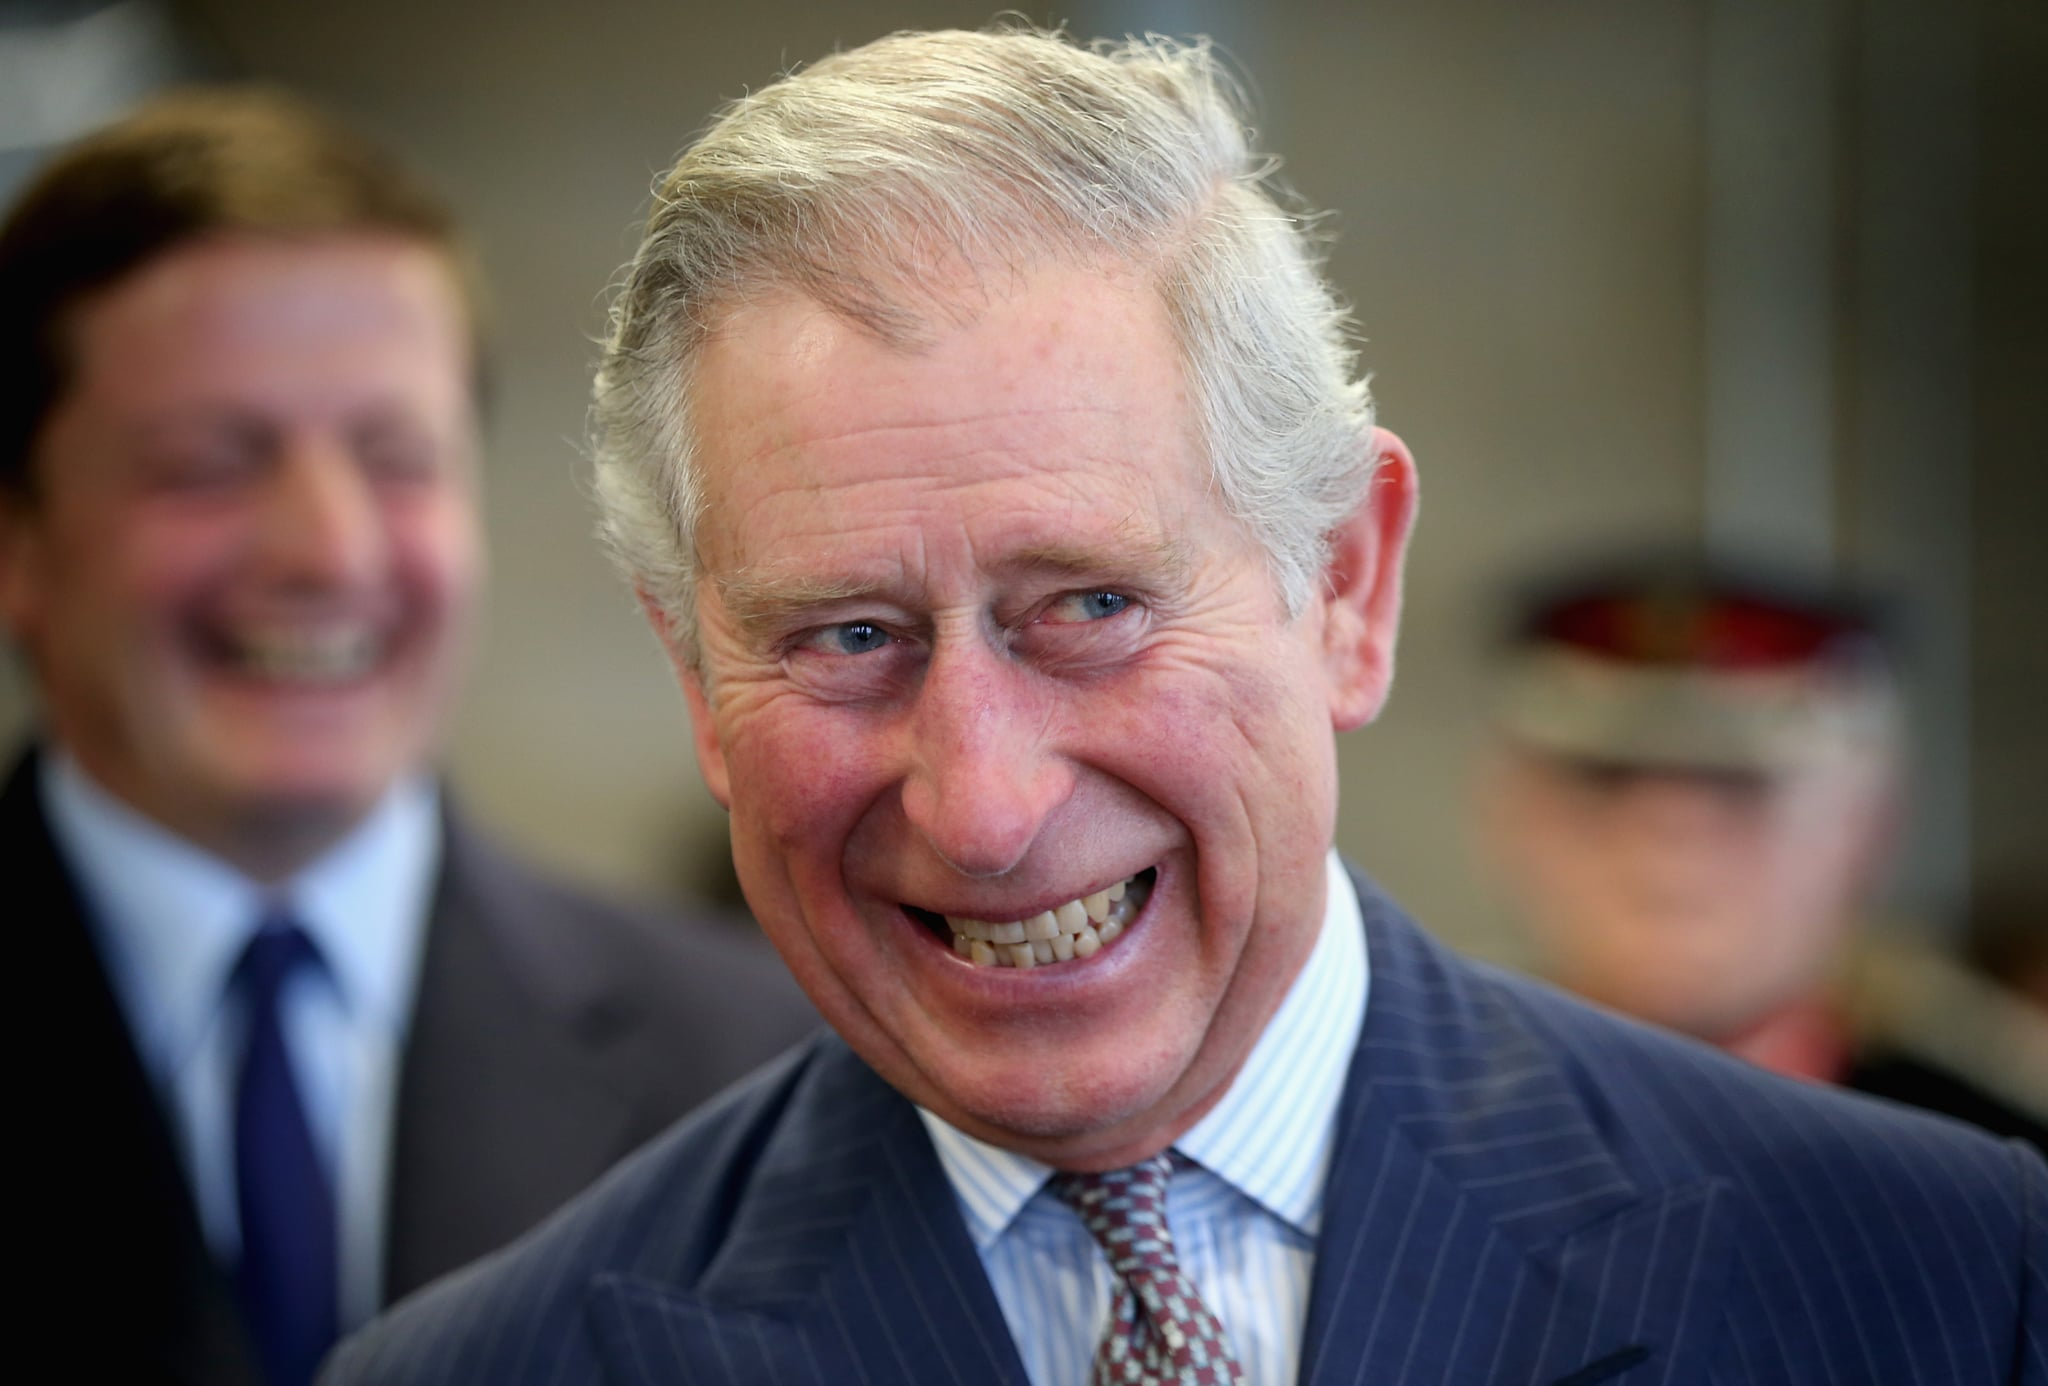 You think Princes Charles is just misunderstood.